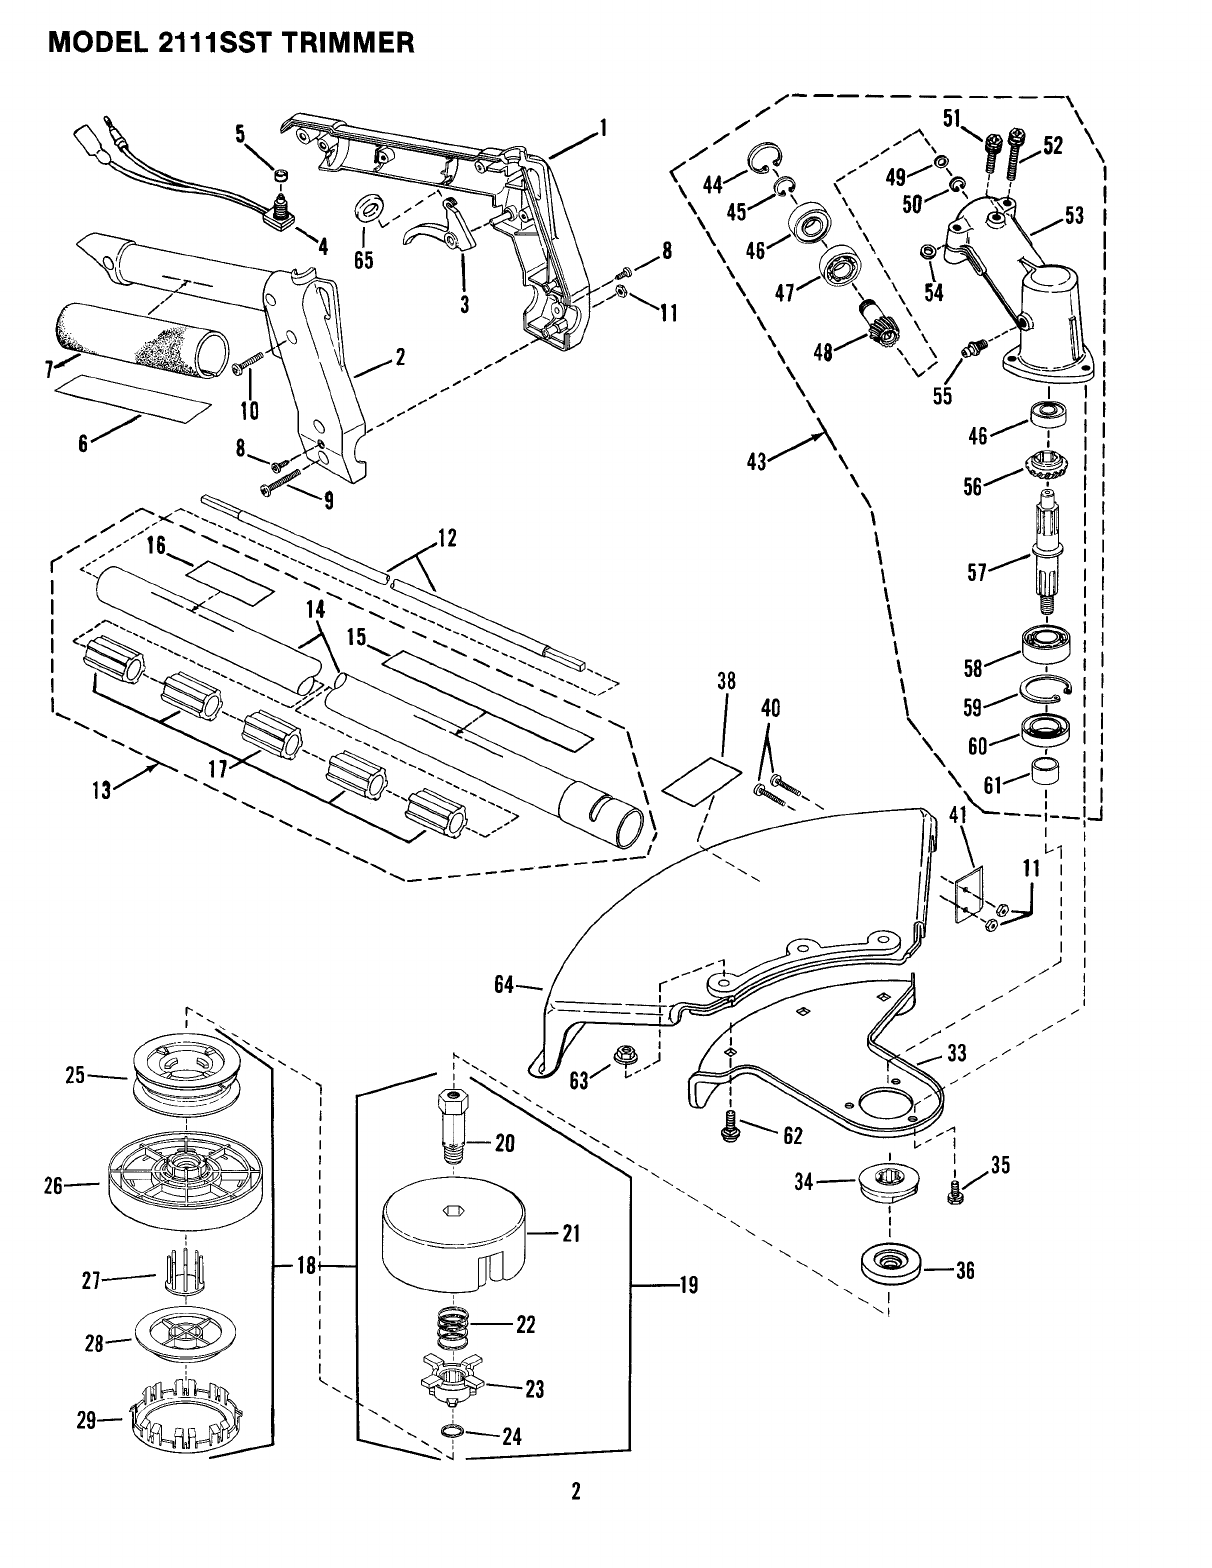 Page 2 of Snapper Trimmer 2111SST User Guide